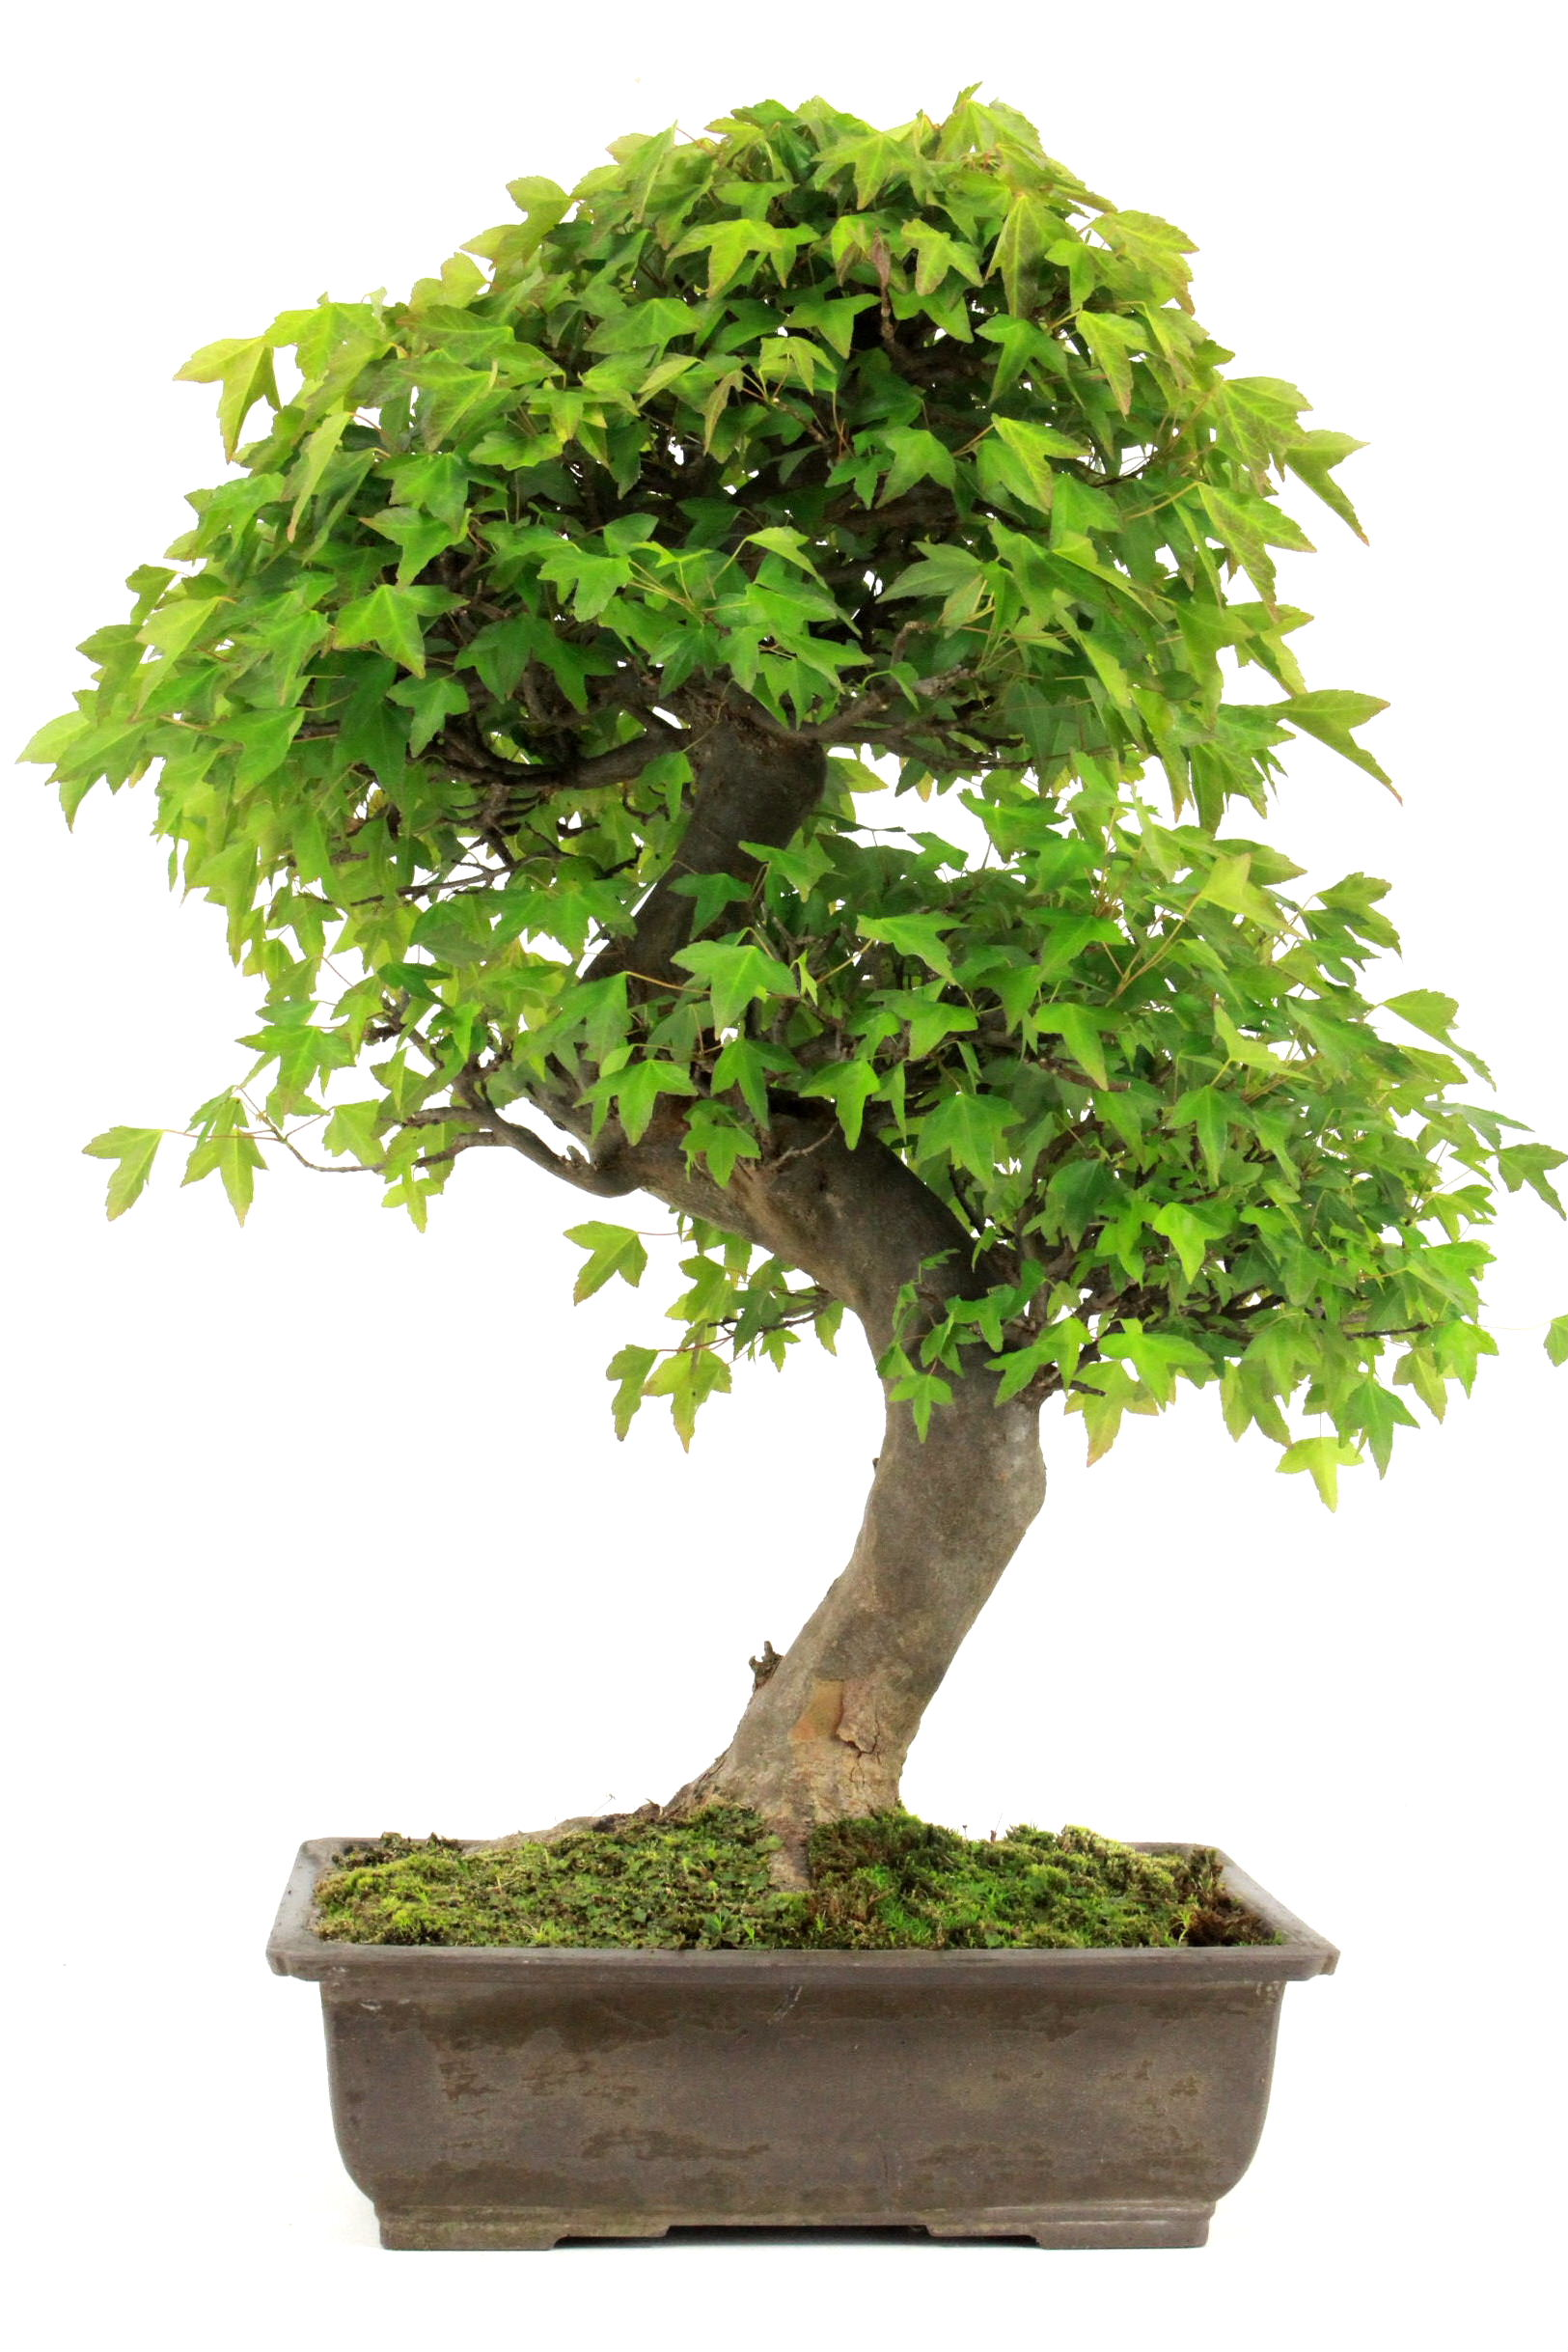 Bonsai dreispitz ahorn 67 cm 329 bei oyaki bonsai kaufen for Bonsai onlineshop